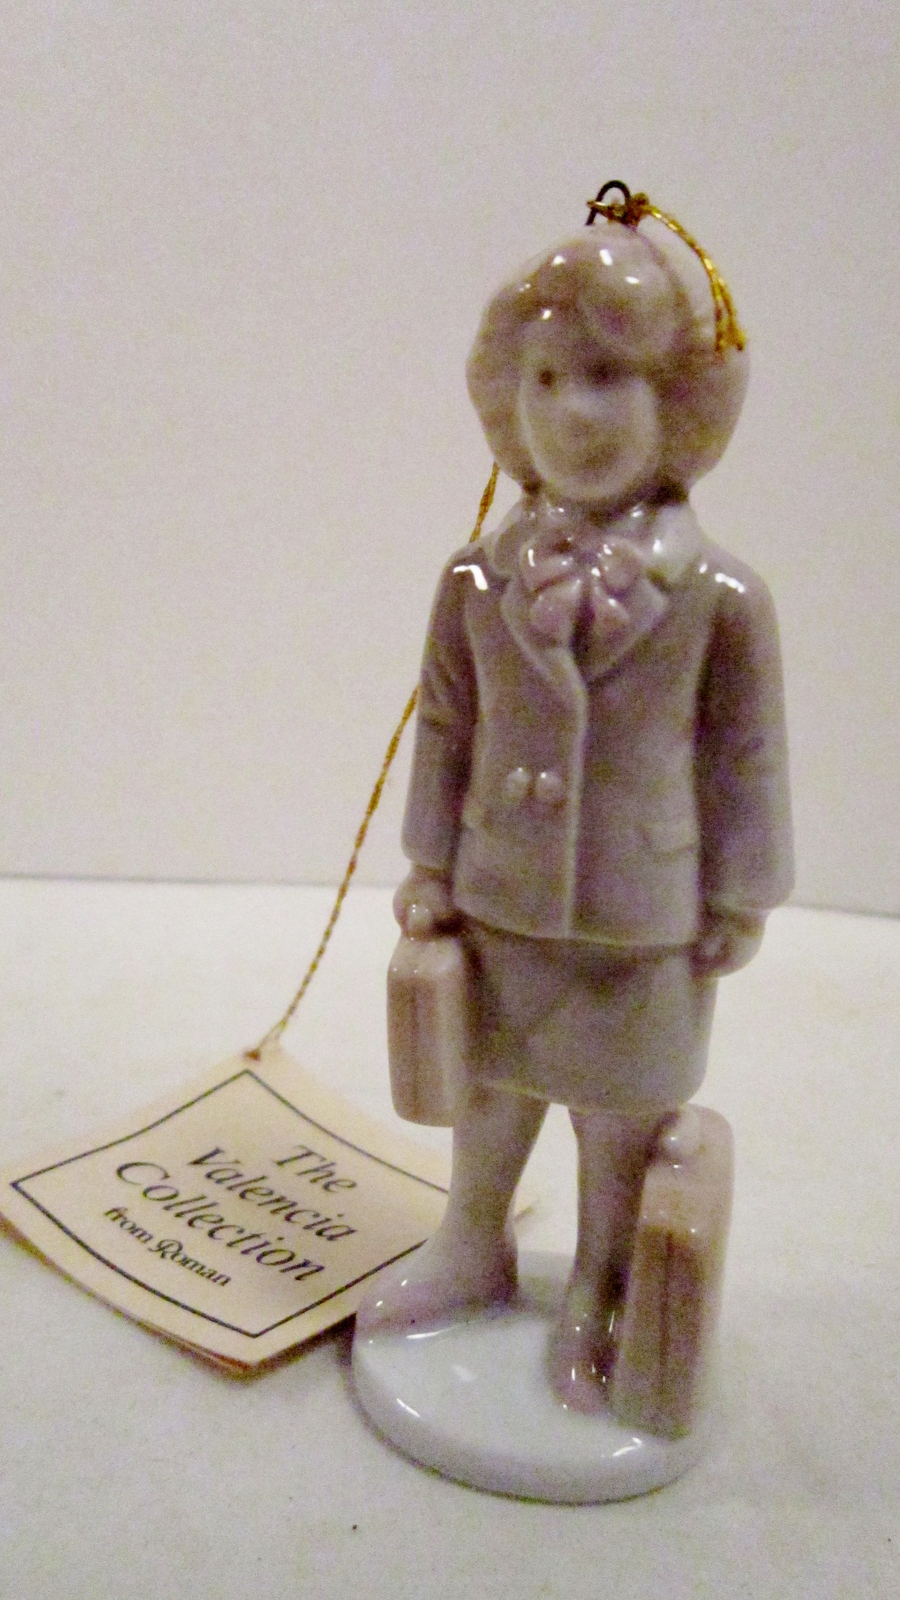 Valencia collection by roman inc 1985 woman figurine 01